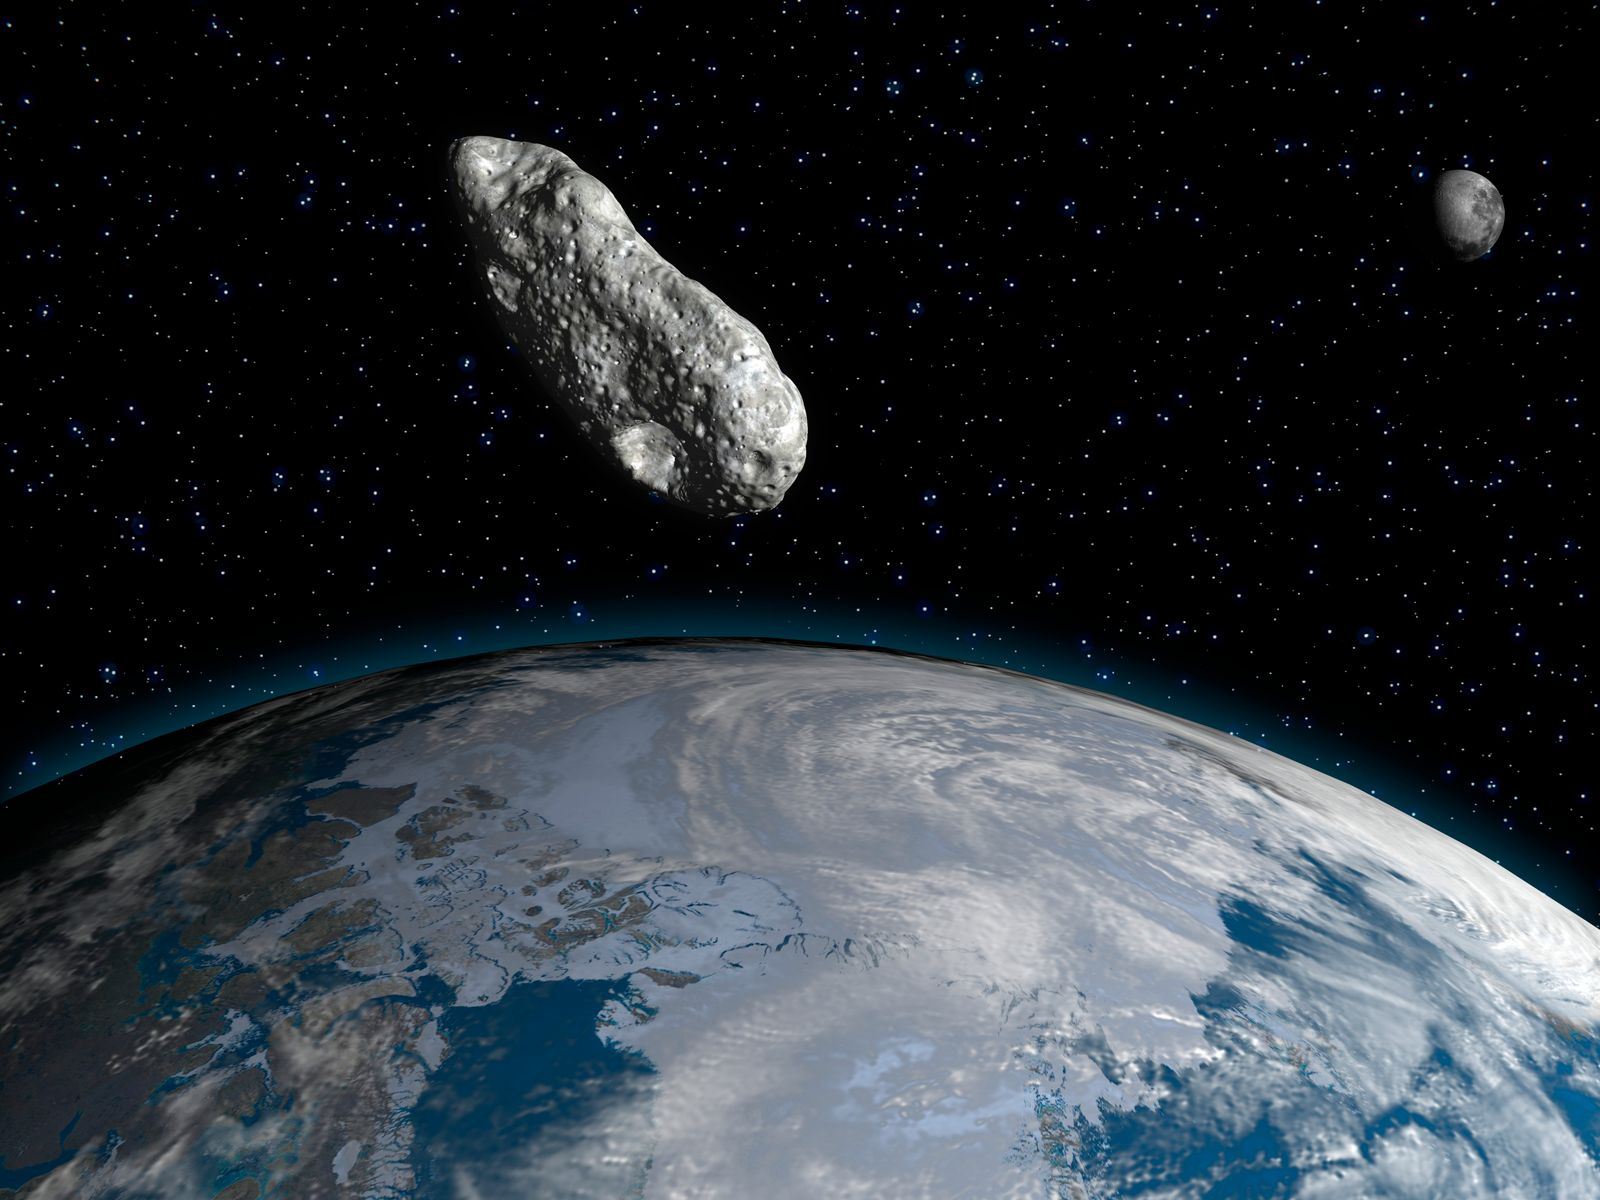 Asteroid, artwork